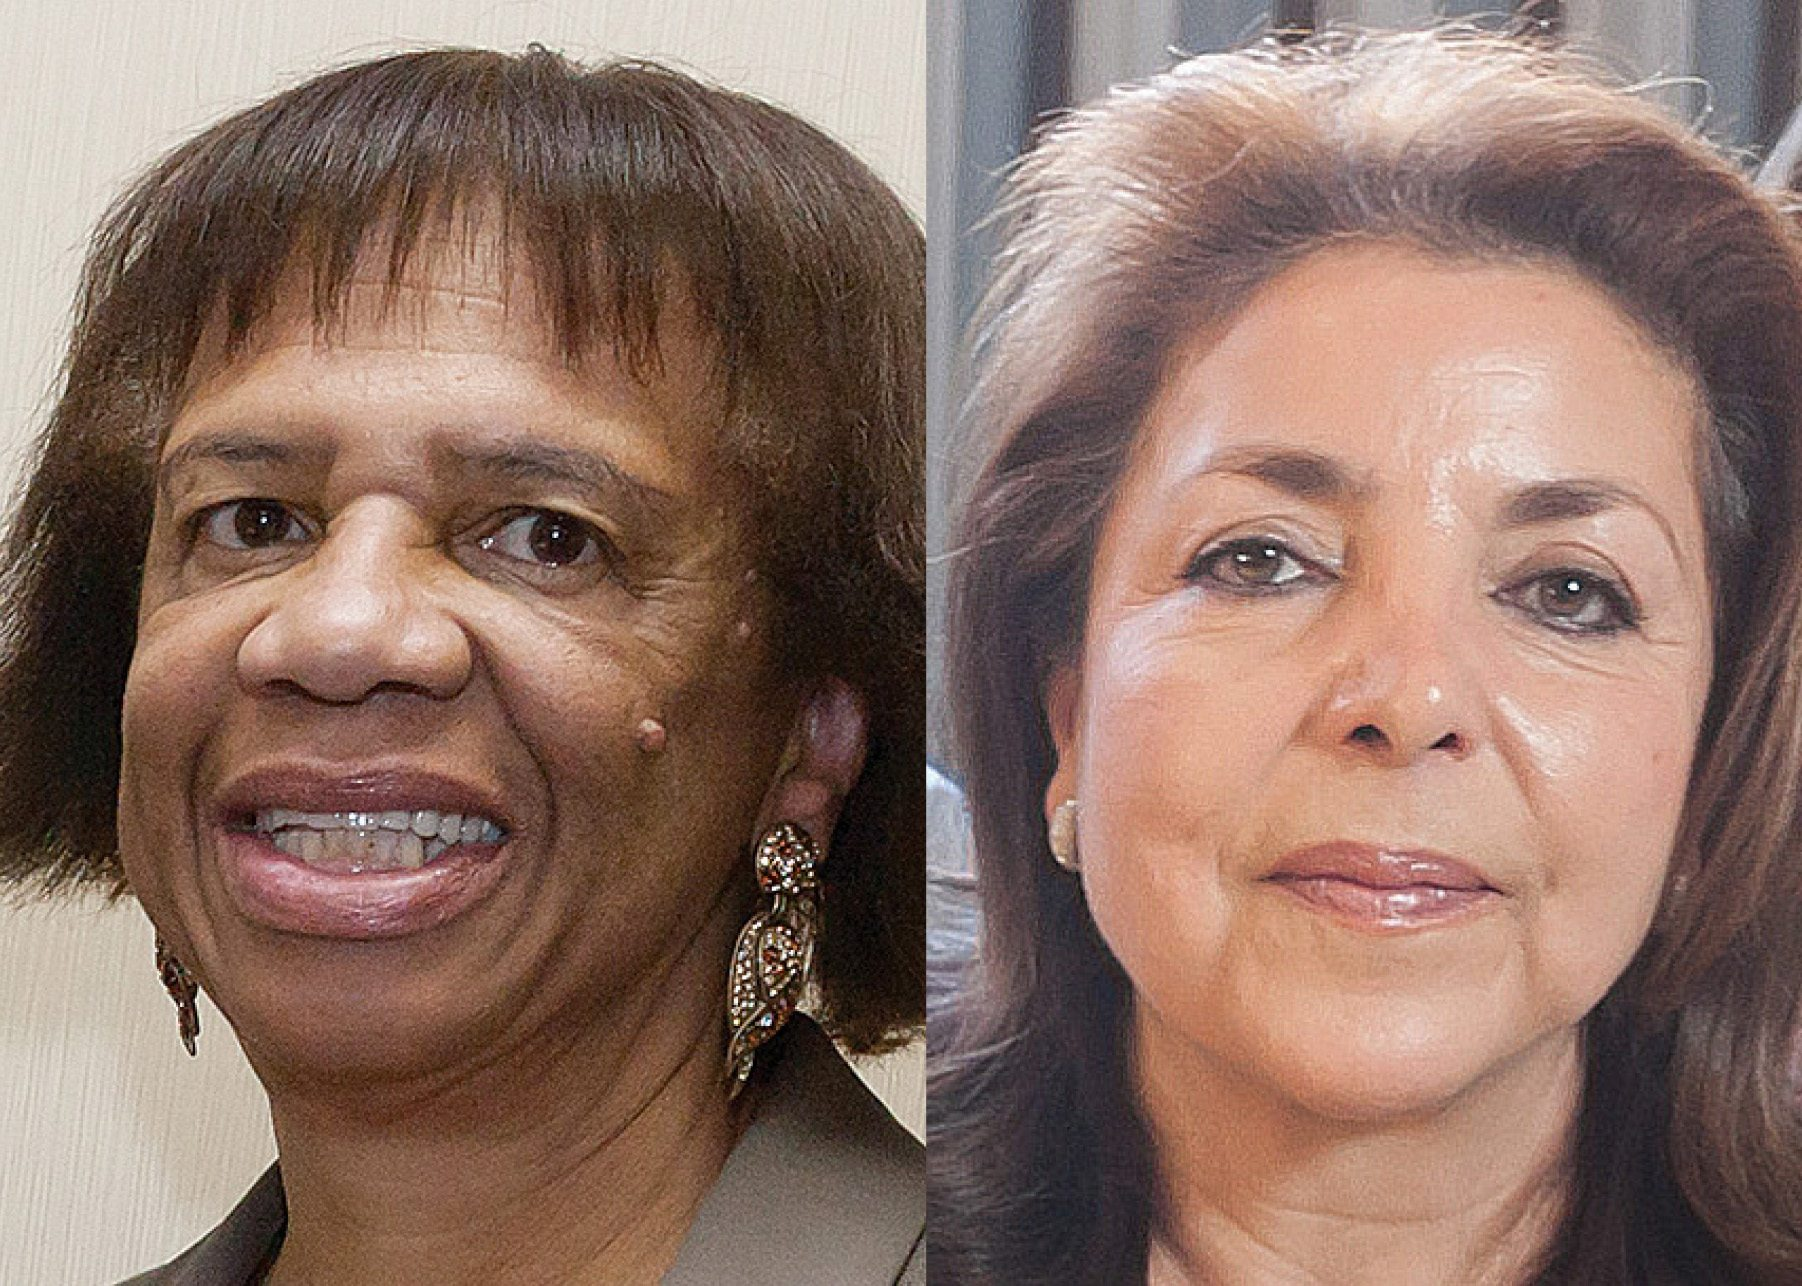 Former Human Rights Commissioner Nazly Mohajer, former commission staffer Zula Jones (both pictured), and former school board member Keith Jackson were all charged with bribery in January in San Francisco Superior Court. (Courtesy photos)